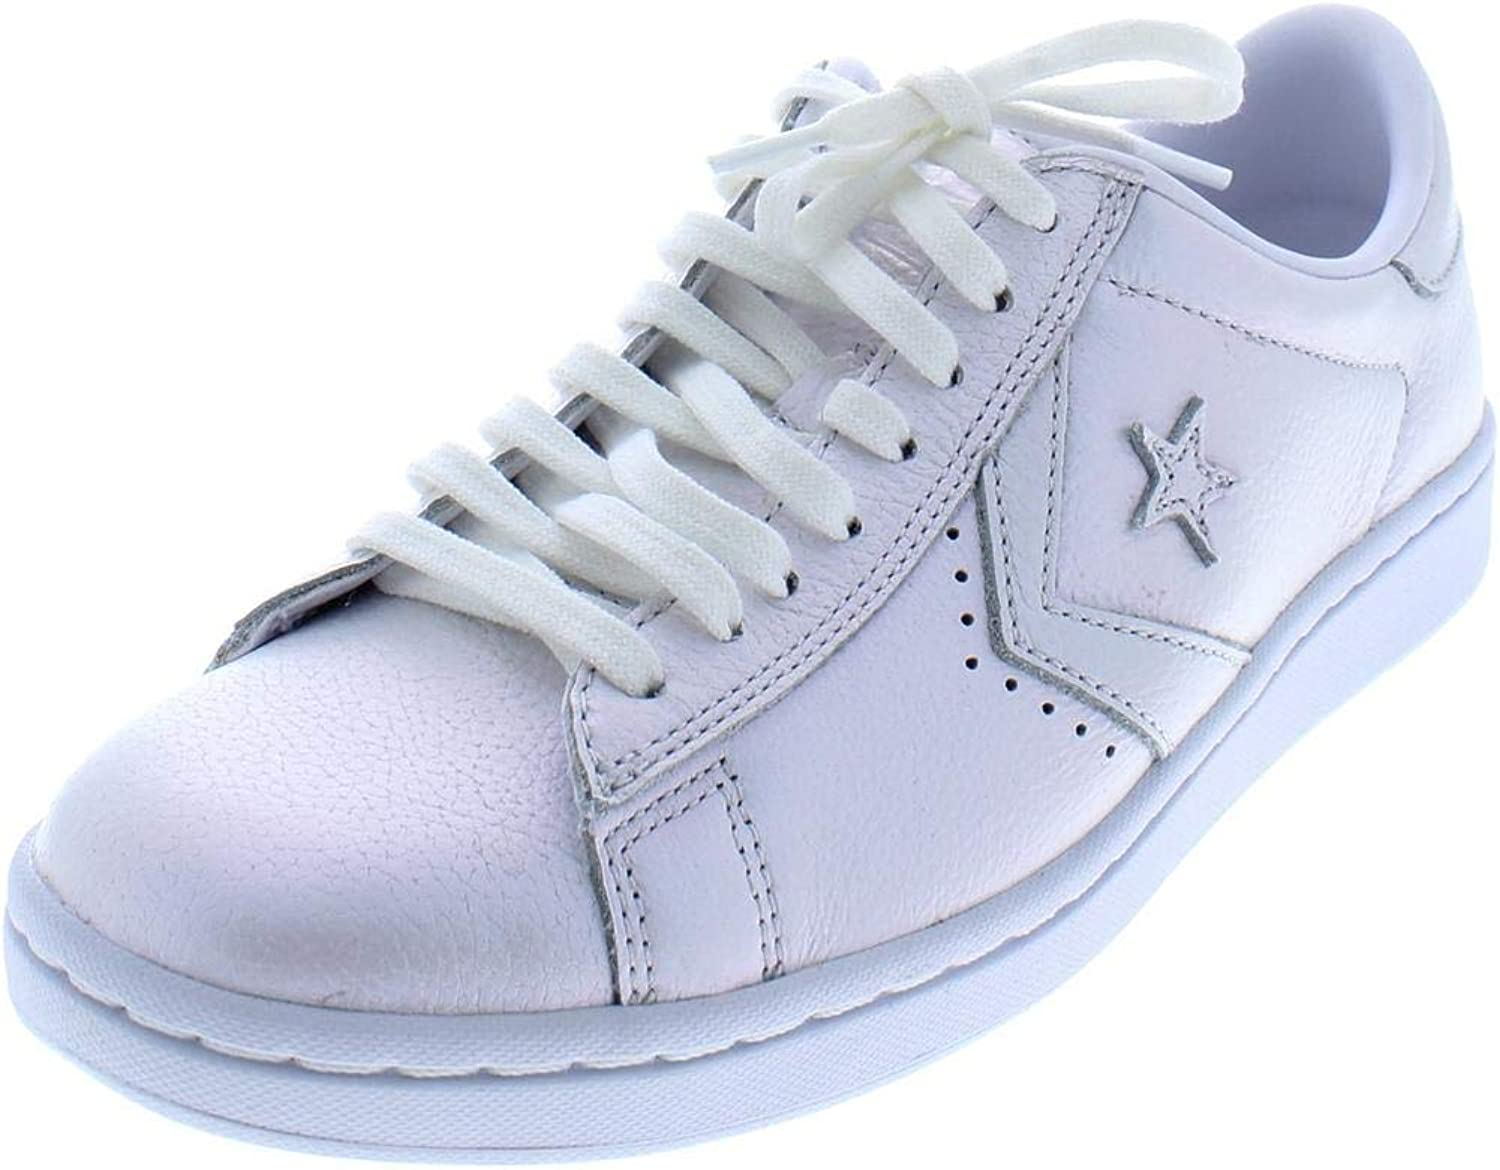 Converse PRO Leather LP OX Trainers Women White Silver Low top Trainers